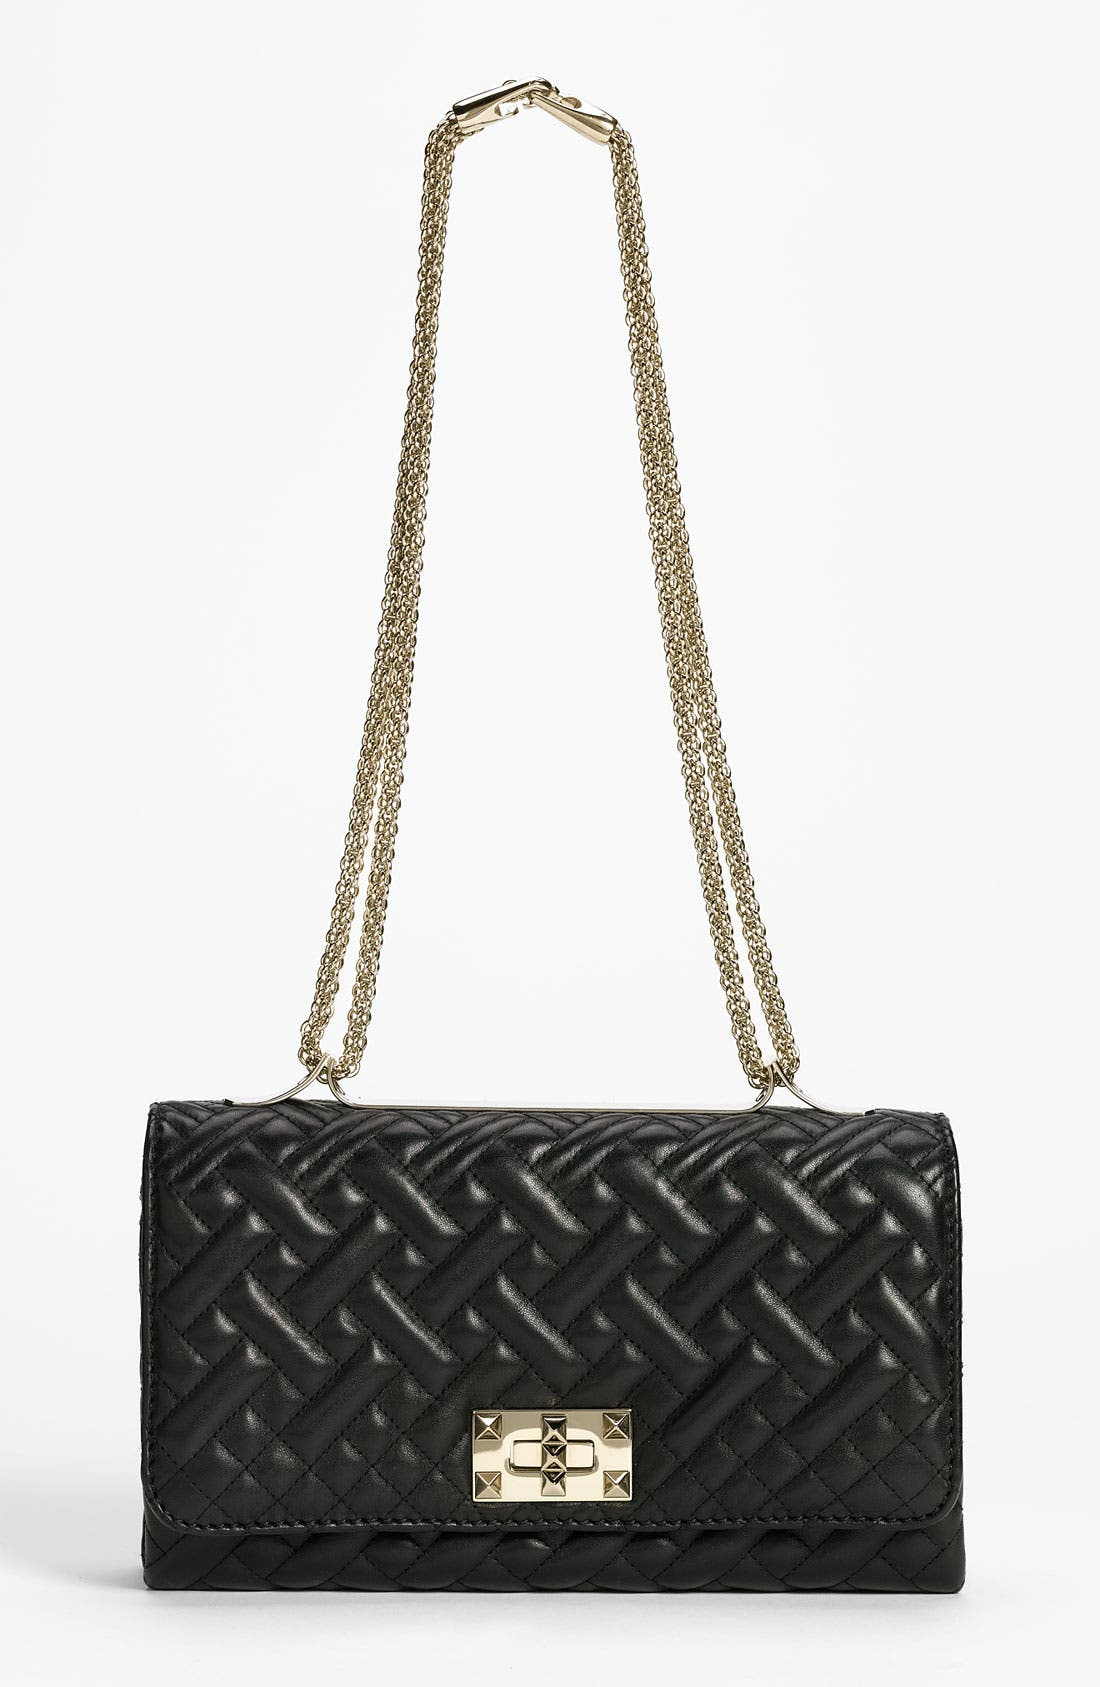 Alternate Image 1 Selected - Valentino 'Girello Flap - Small' Leather Shoulder Bag